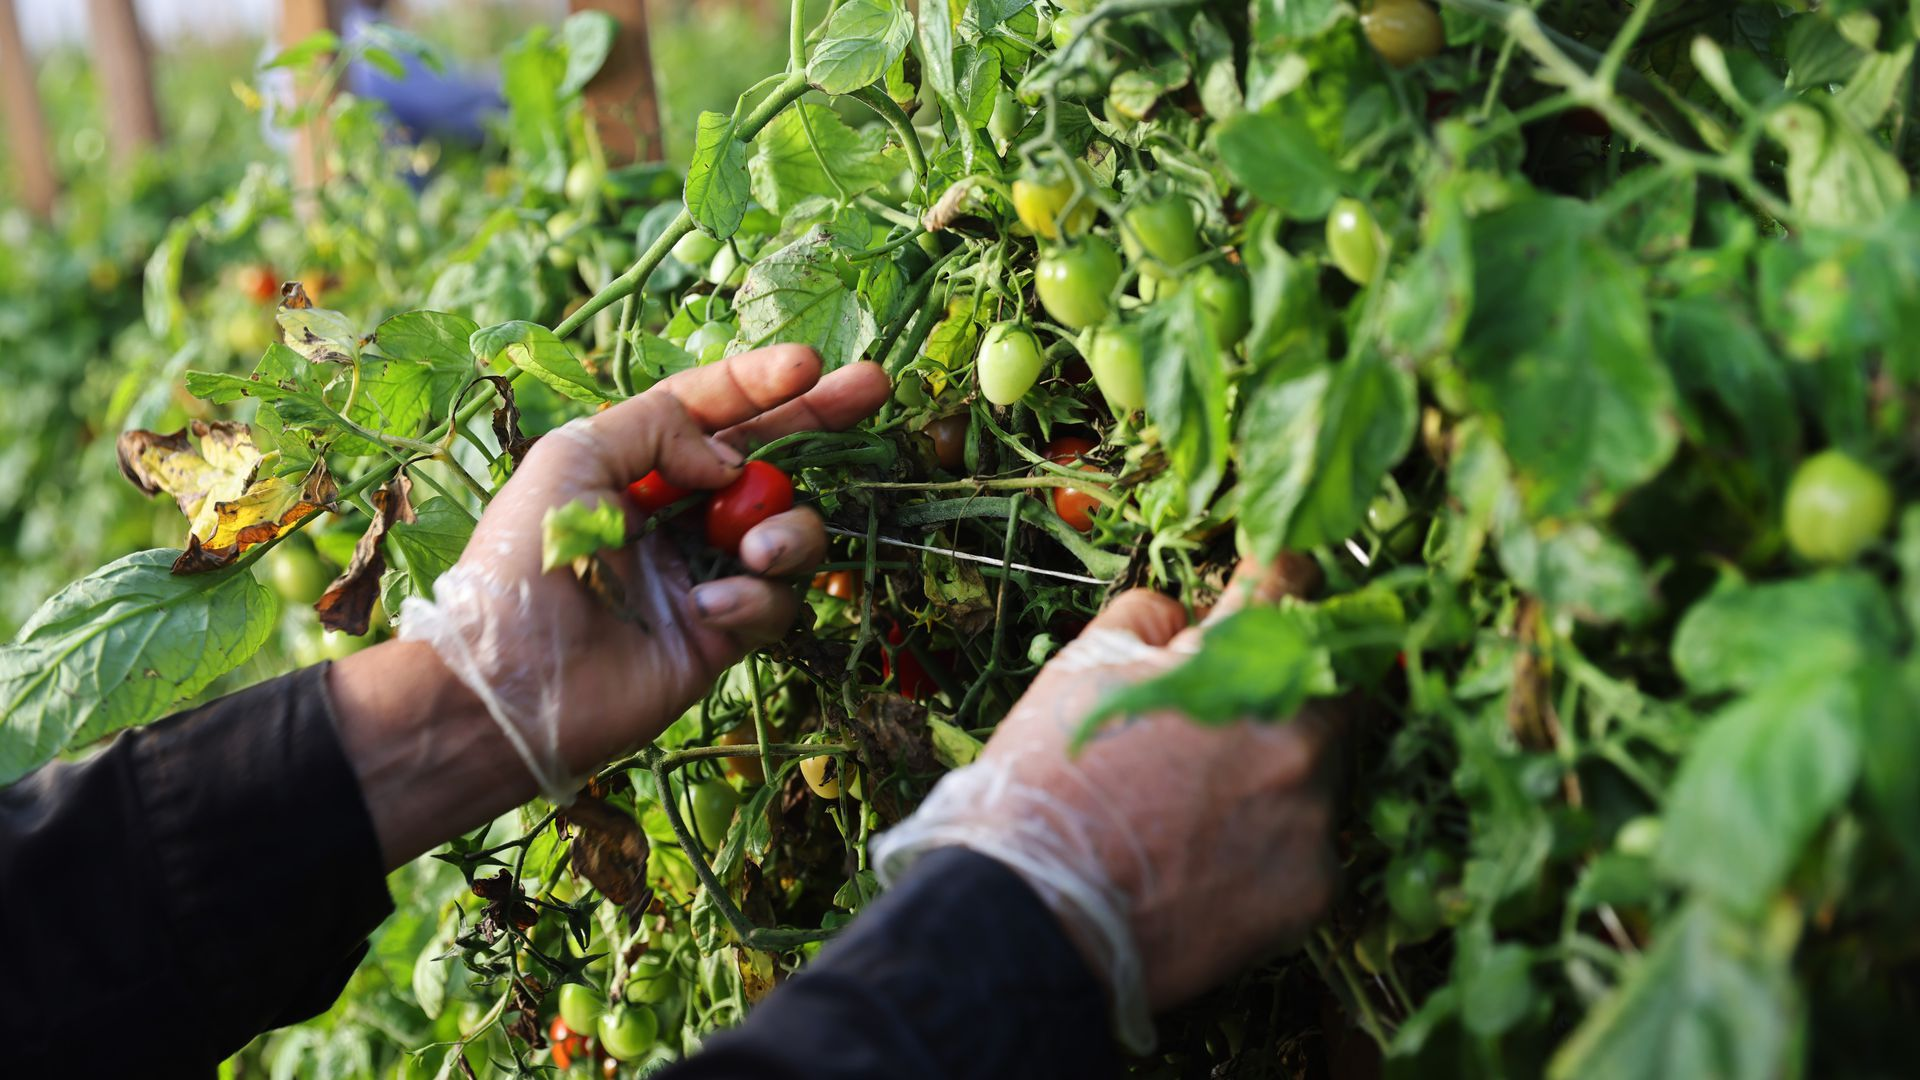 A worker's hands picking tomatoes at a farm.